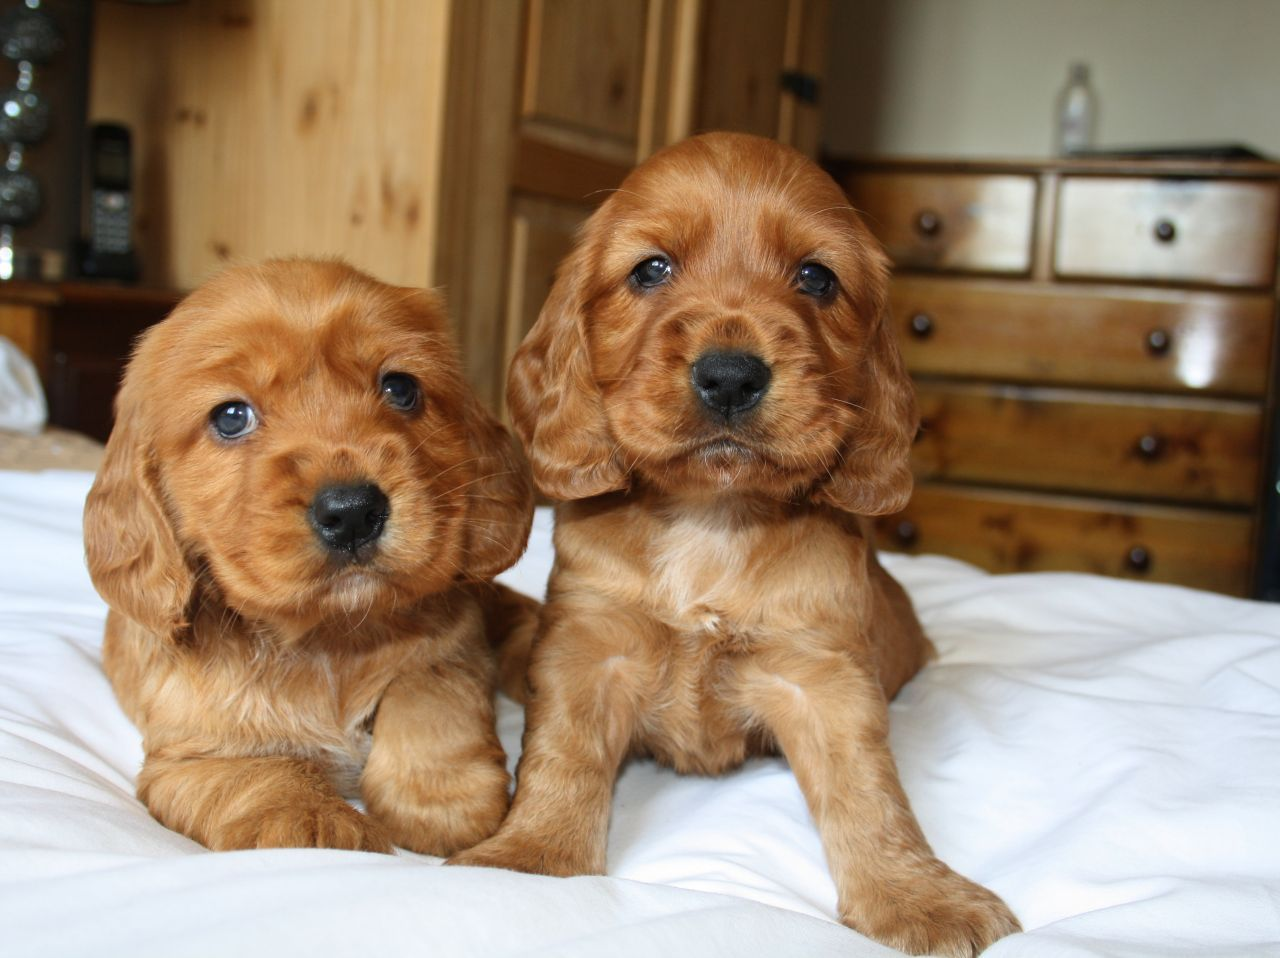 Beautiful Cocker Spaniel Puppies For Sale Spaniel Puppies For Sale Cocker Spaniel Puppies Puppies For Sale